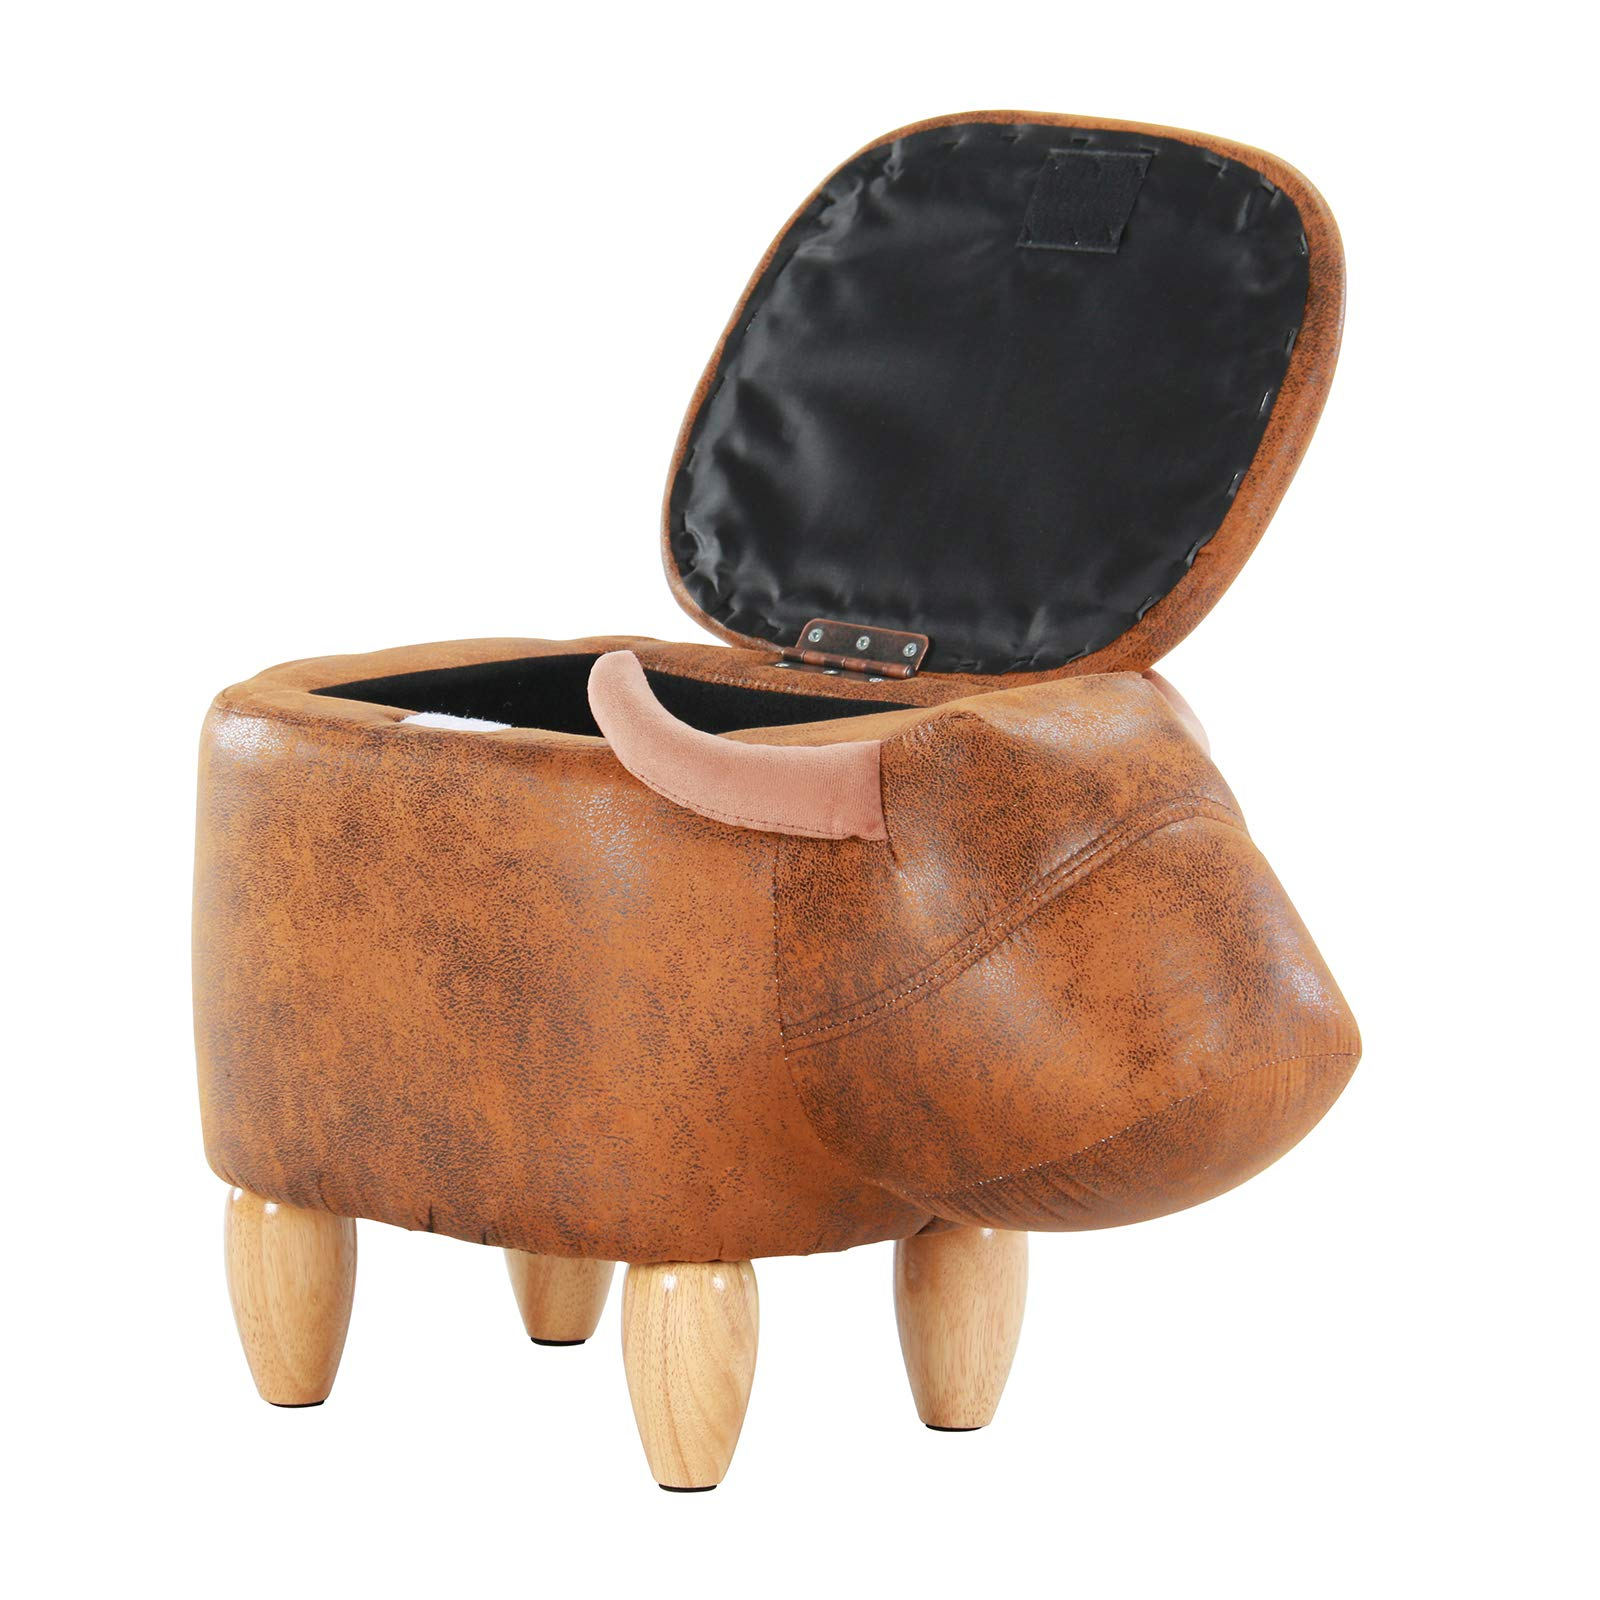 Artechworks Upholstered Ride-On Animal Storage Ottoman Footrest Stool with Vivid Adorable Animal-Like Features Creative for Kids and Adults Gift,Changing Shoes,Decoration, Toys(Brown Buffalo), Brown